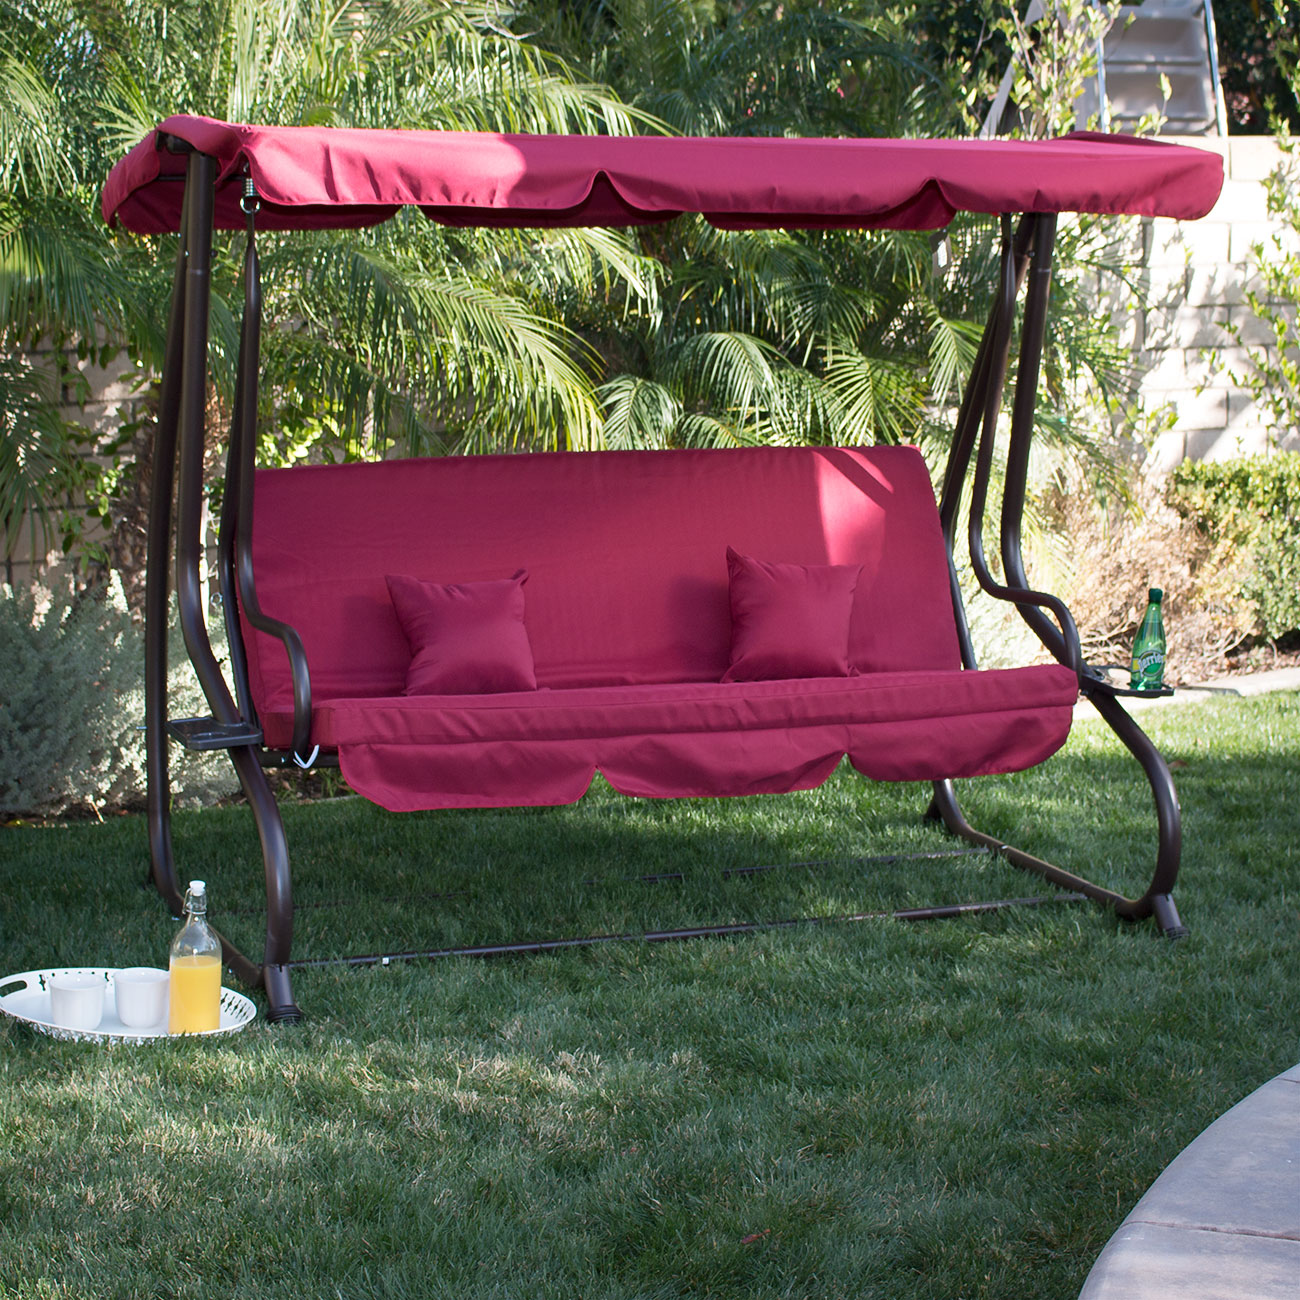 3 Person Outdoor Swing W Canopy Seat Patio Hammock Furniture Bench Yard Loves